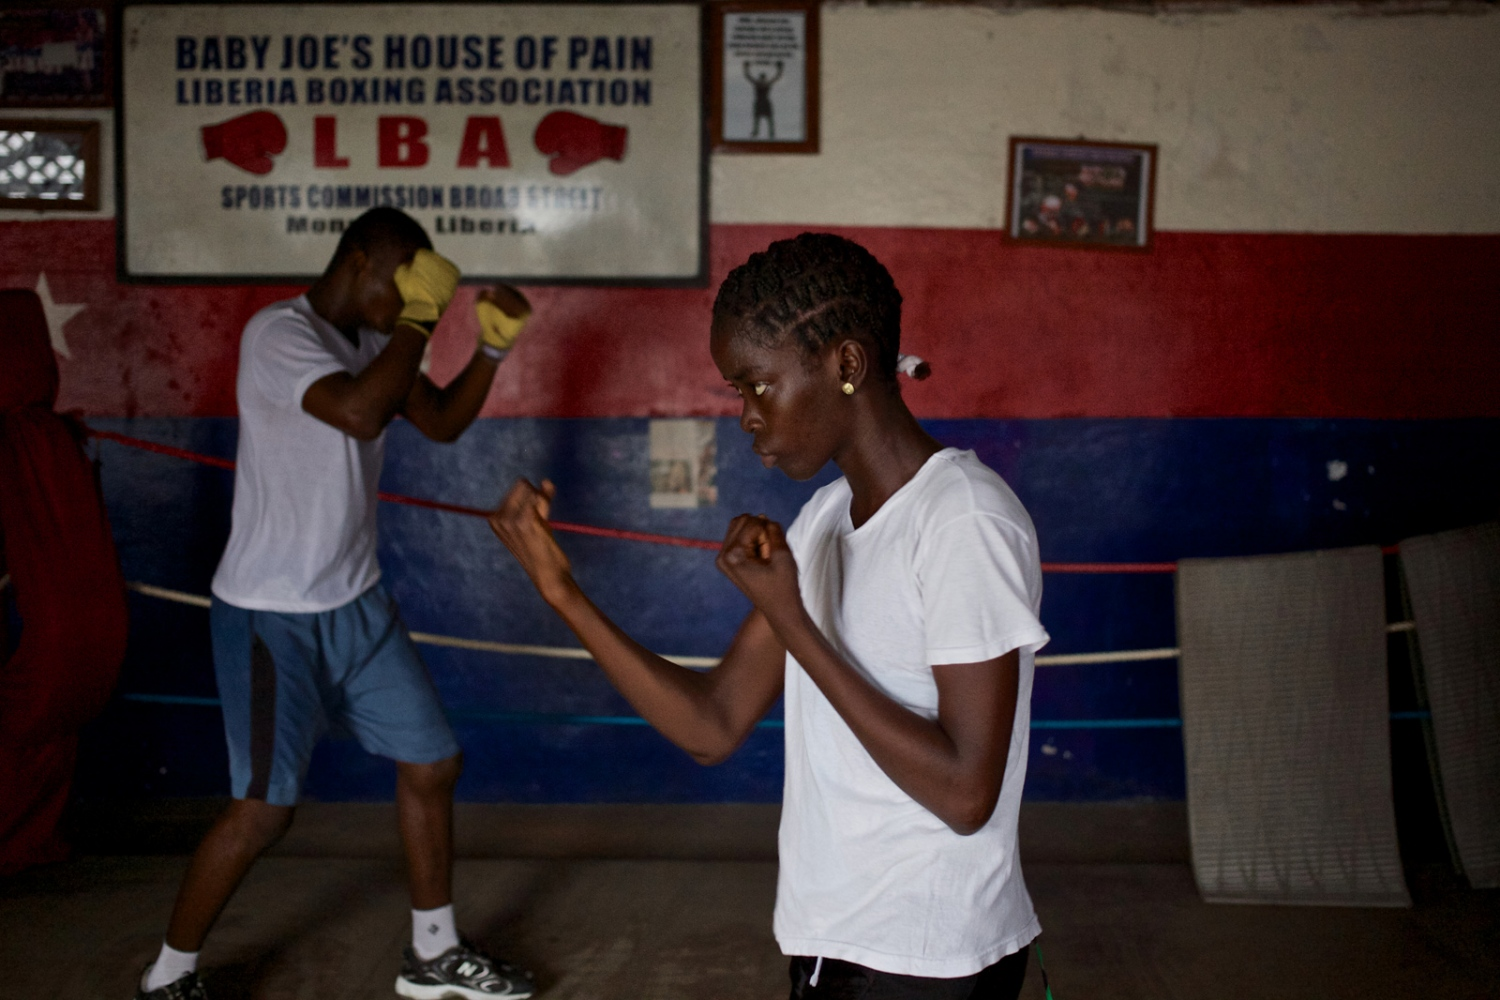 Monrovia, Liberia. July 2013 Hawa during boxing training. She is the only female attending boxing lessons at the local club.